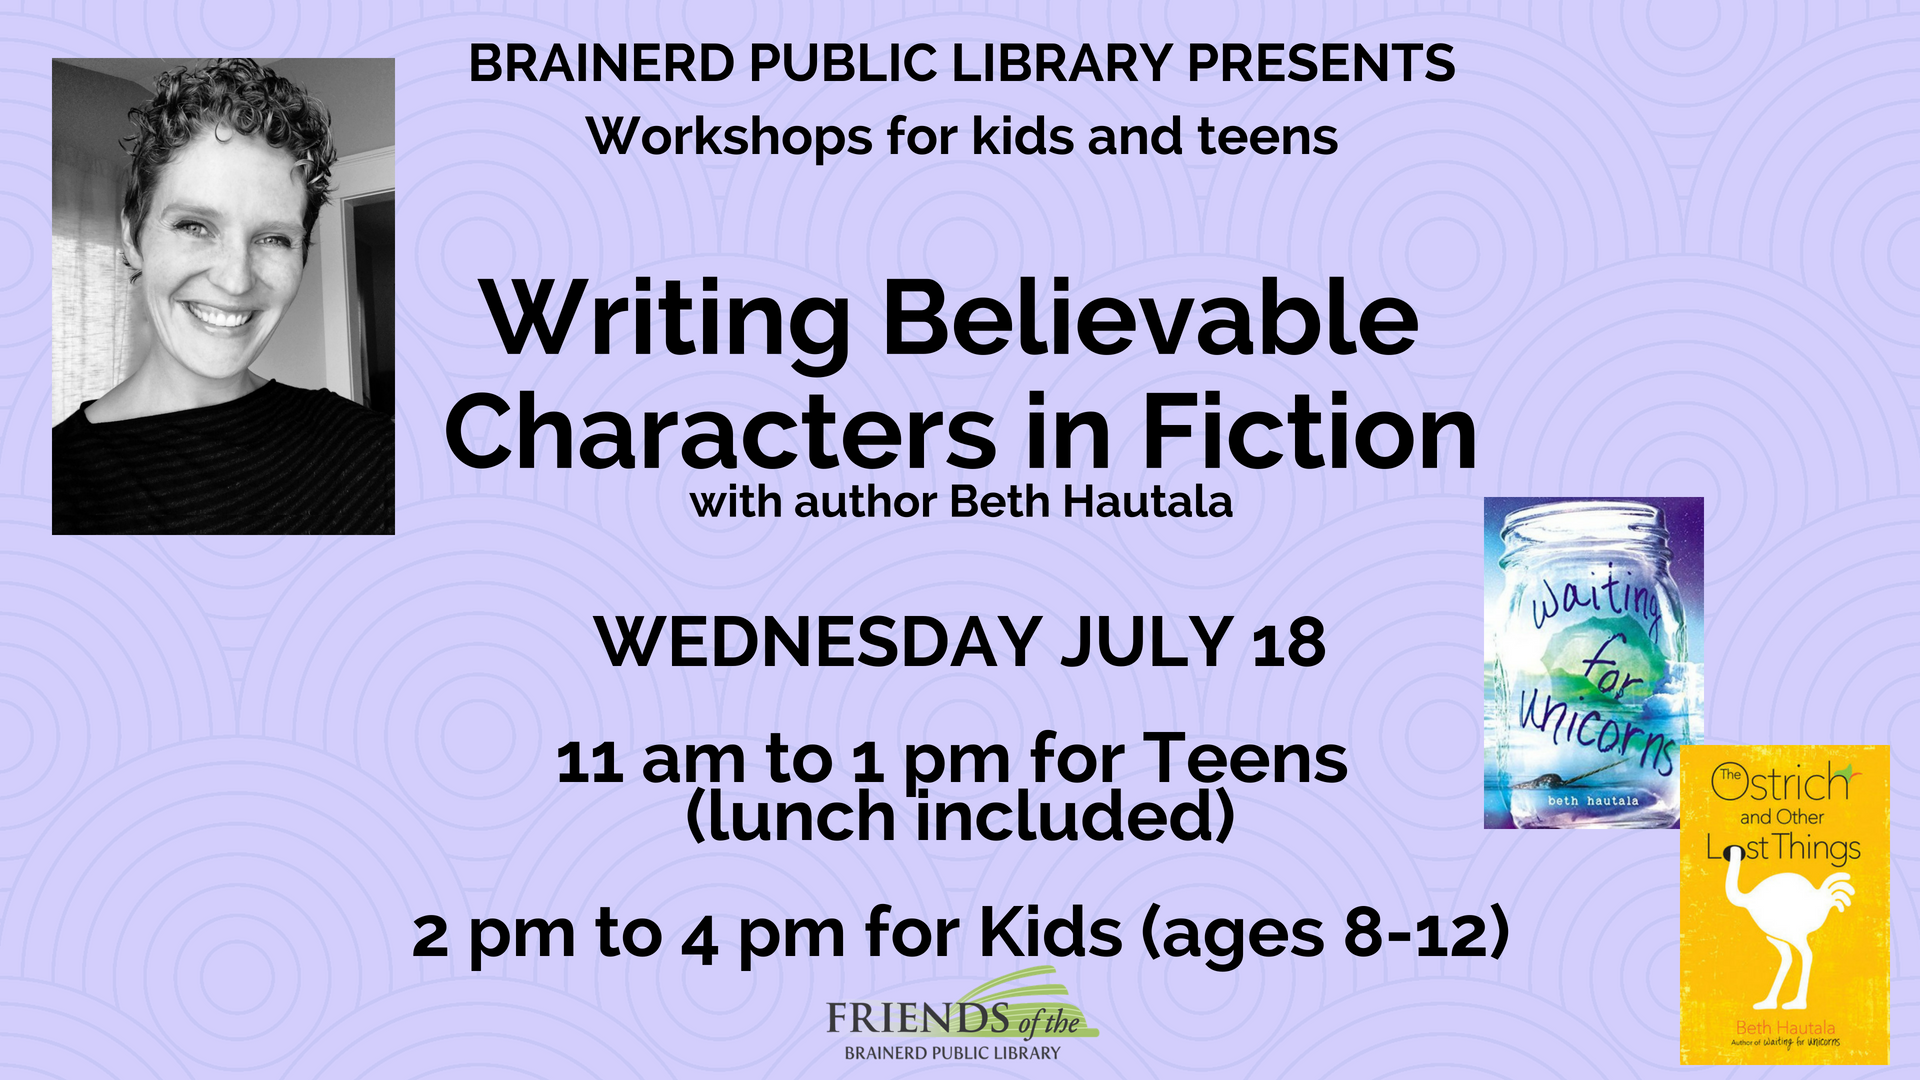 Kids Writing Workshop: Writing Believable Characters in Fiction